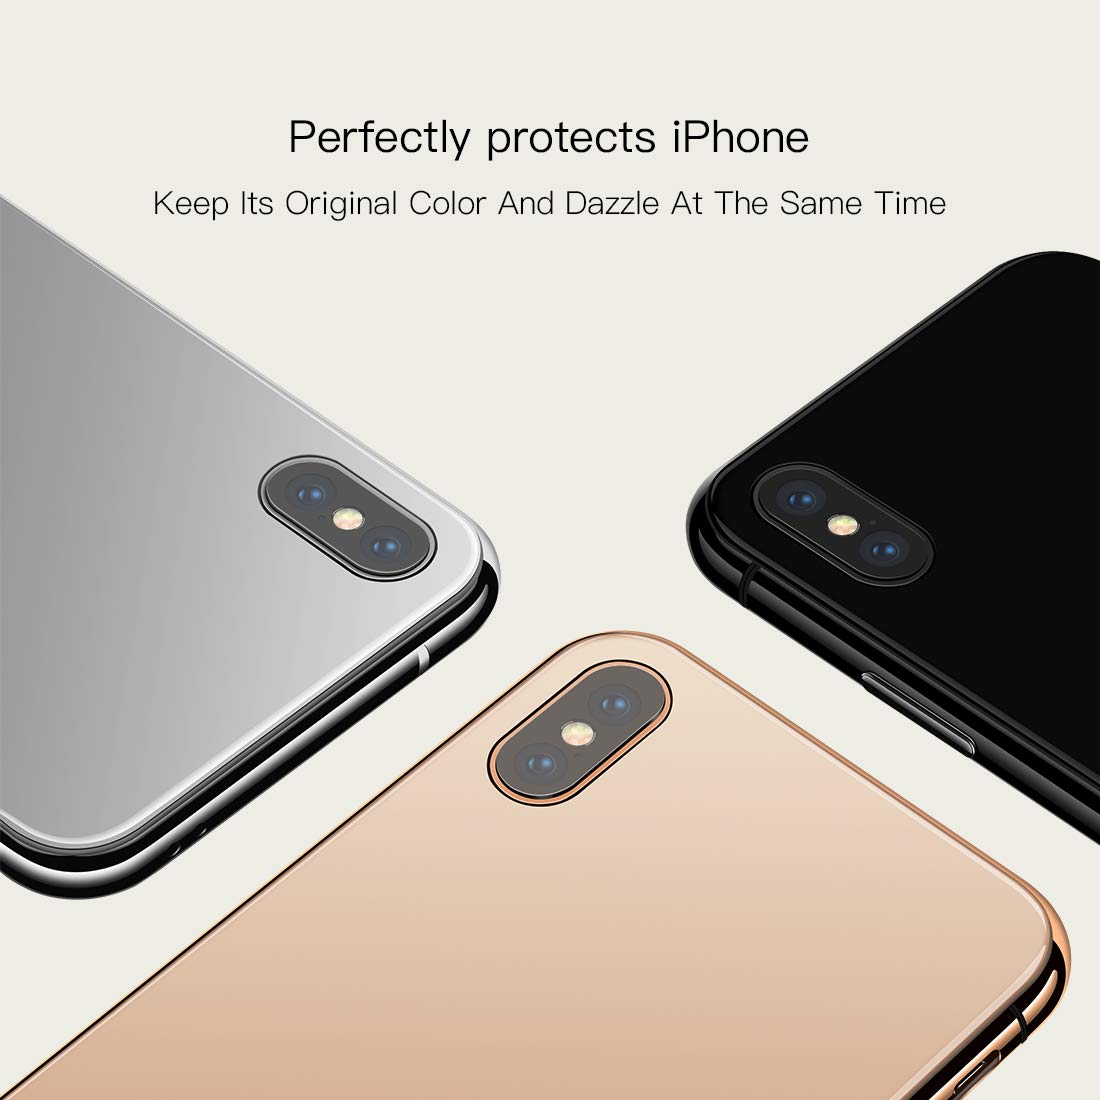 JOYROOM Tempered Glass Case for iPhone Xs Max, Hard Slim Thin Metal Bumper with Soft TPU Inner Frame Case, Anti-Scratch 9H Clear Glass Back Cover for iPhone 6.5 inch (Gold)